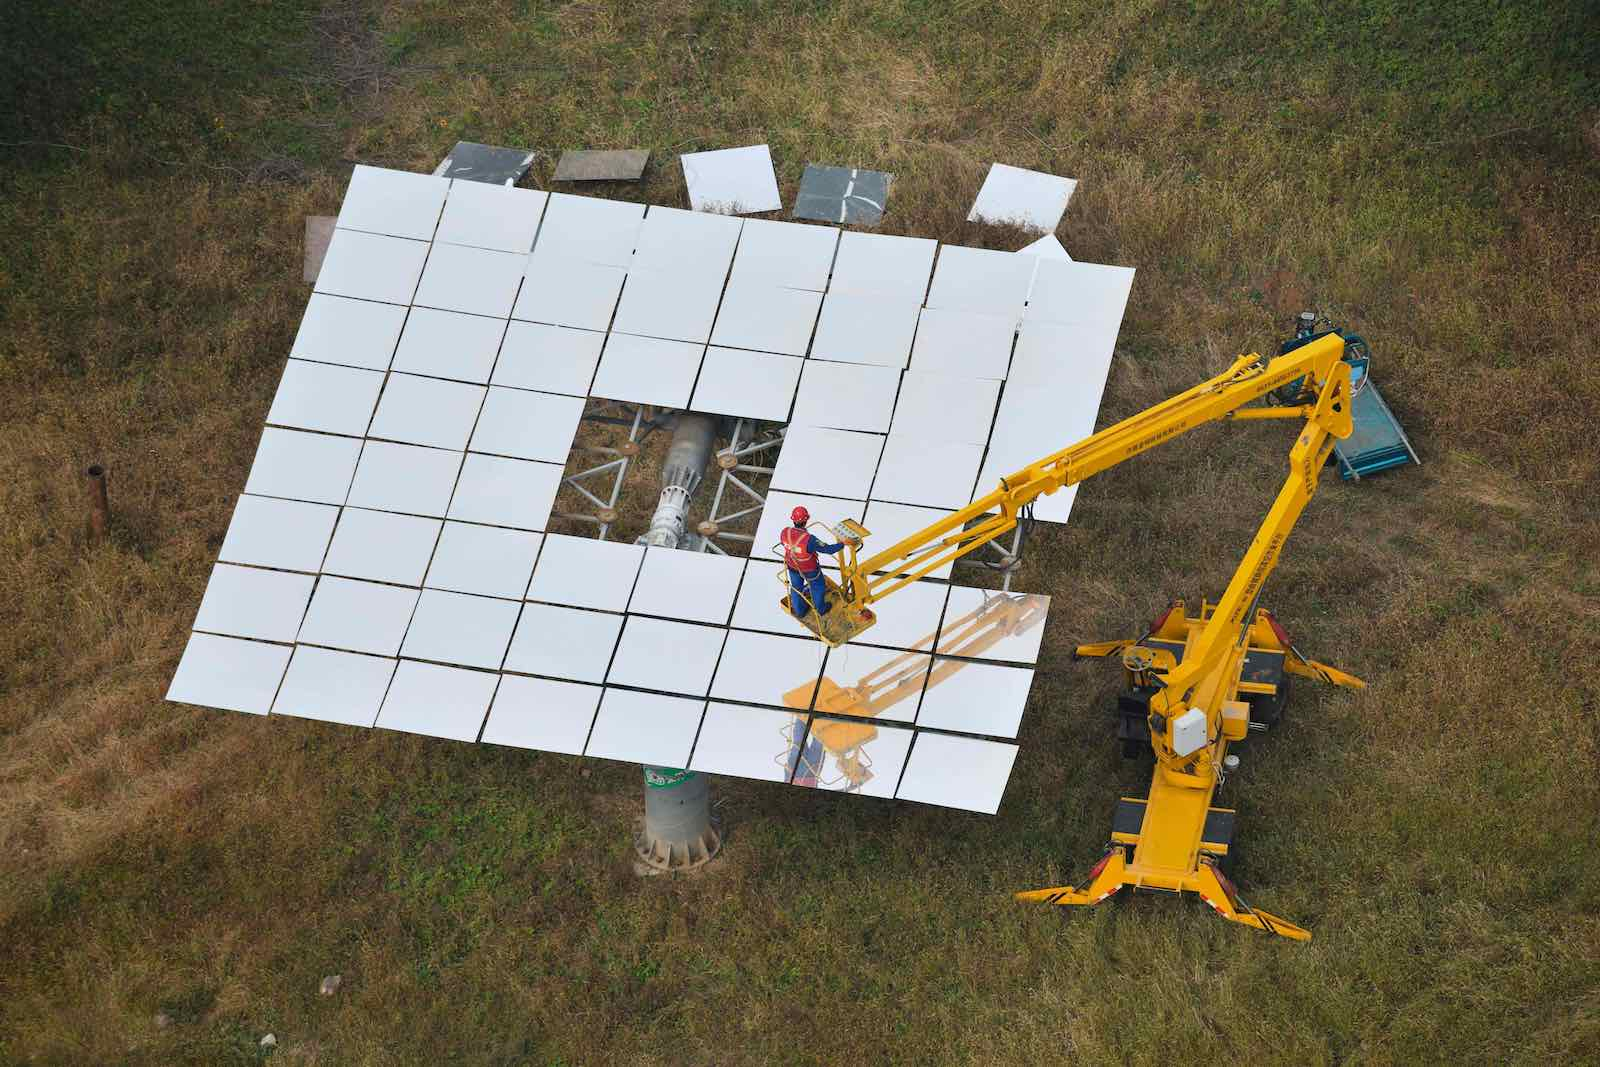 A worker replacing mirrors on a heliostat at the Yanqing Solar Thermal Power Generation Base, in Yanqing, China, north of Beijing, 28 September 2020 (Greg Baker/AFP via Getty Images)